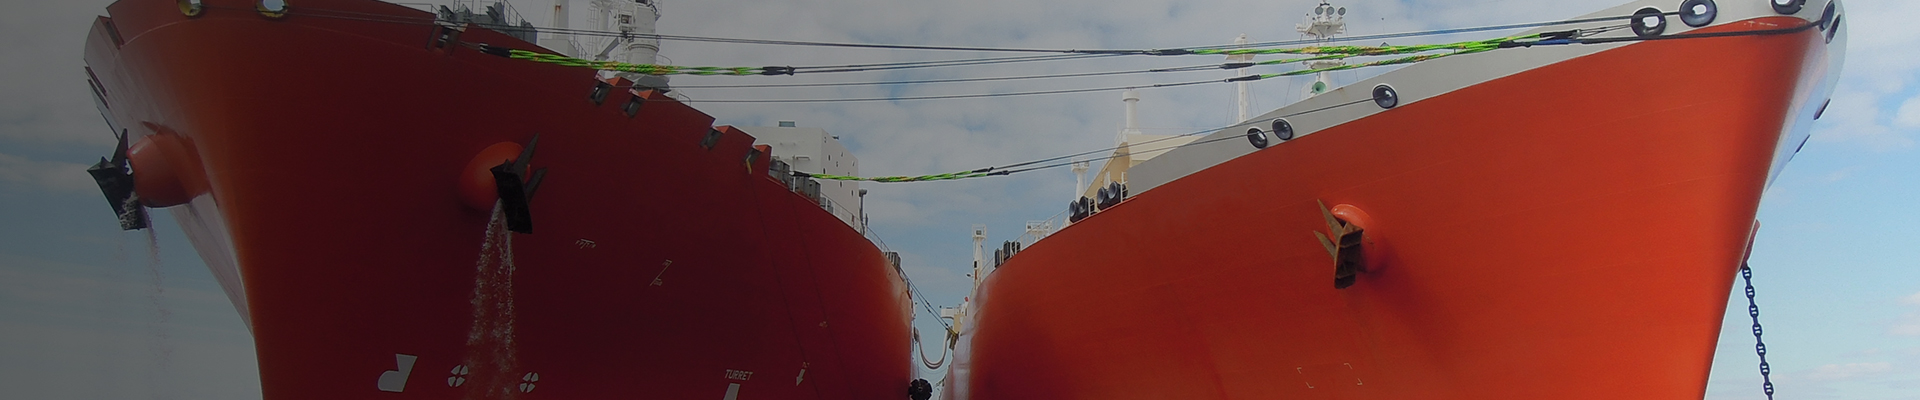 LNG ship to ship banner 1920x400.jpg